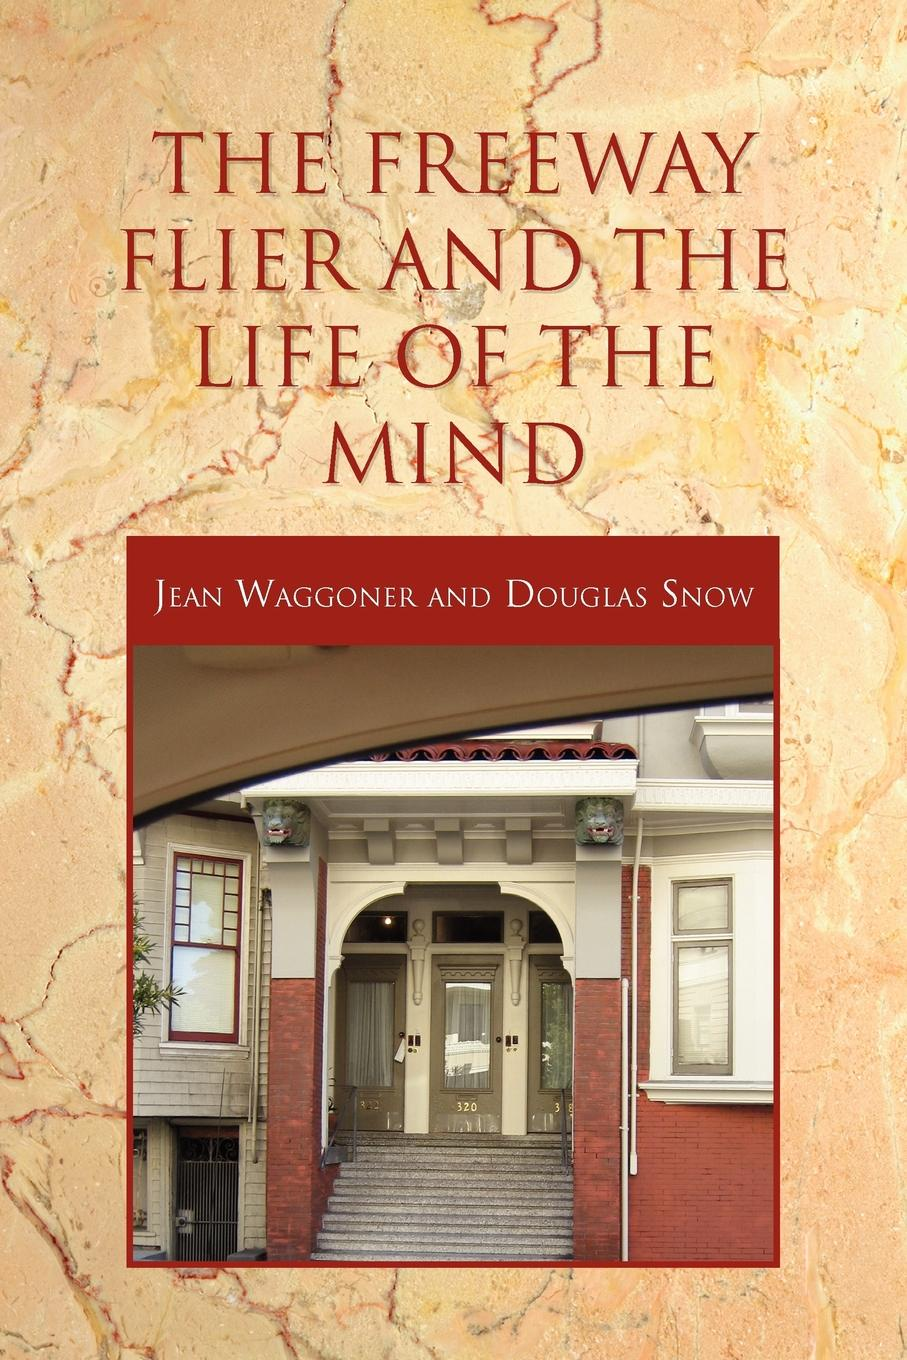 цена на Jean Waggoner, Douglas Snow The Freeway Flier and the Life of the Mind